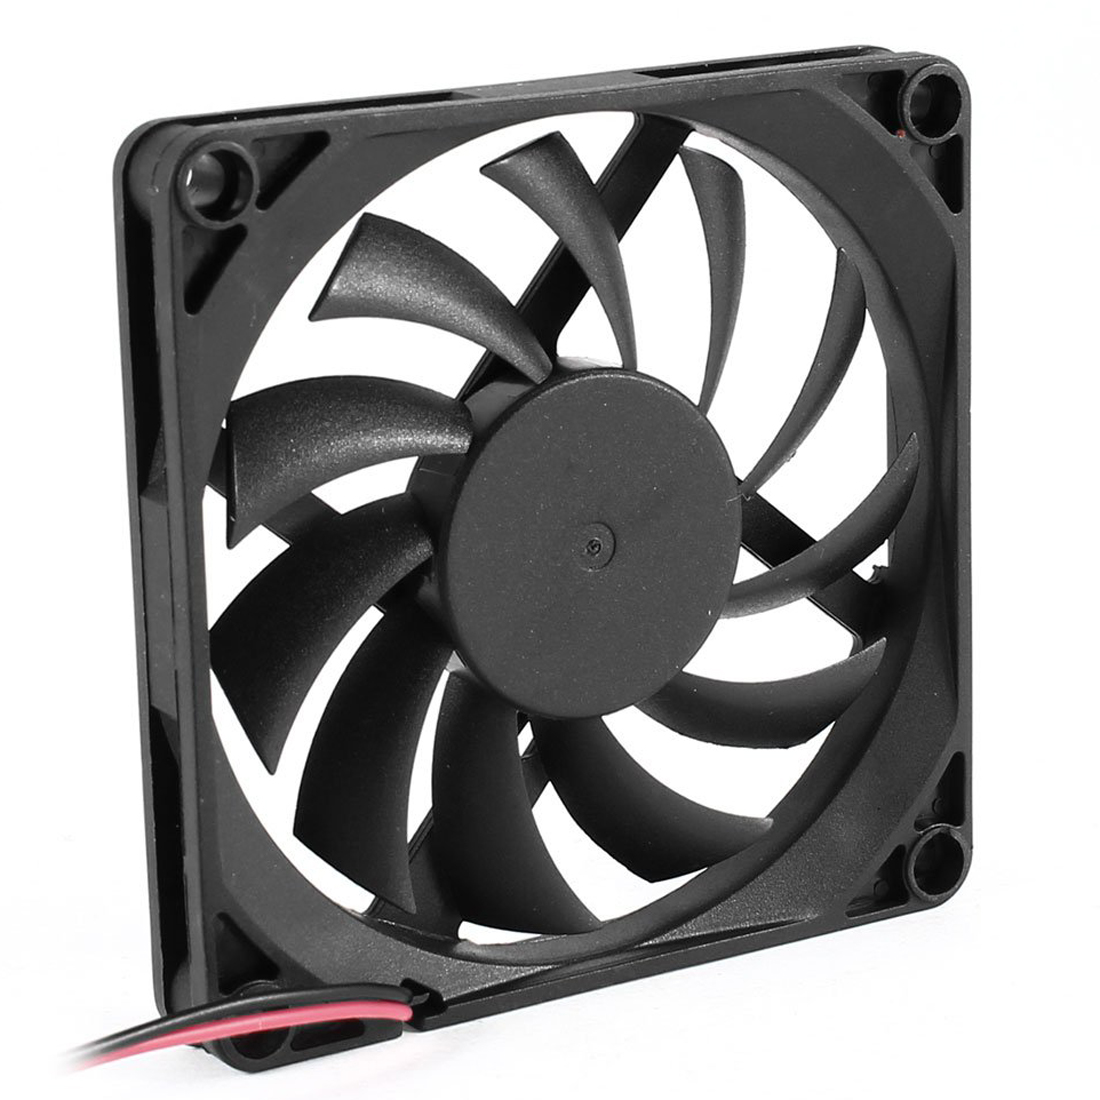 80mm 2 Pin Connector Cooling Fan for Computer Case CPU Cooler Radiator 2016 new 80mm 2 pin connector cooling fan for computer case cpu cooler radiator